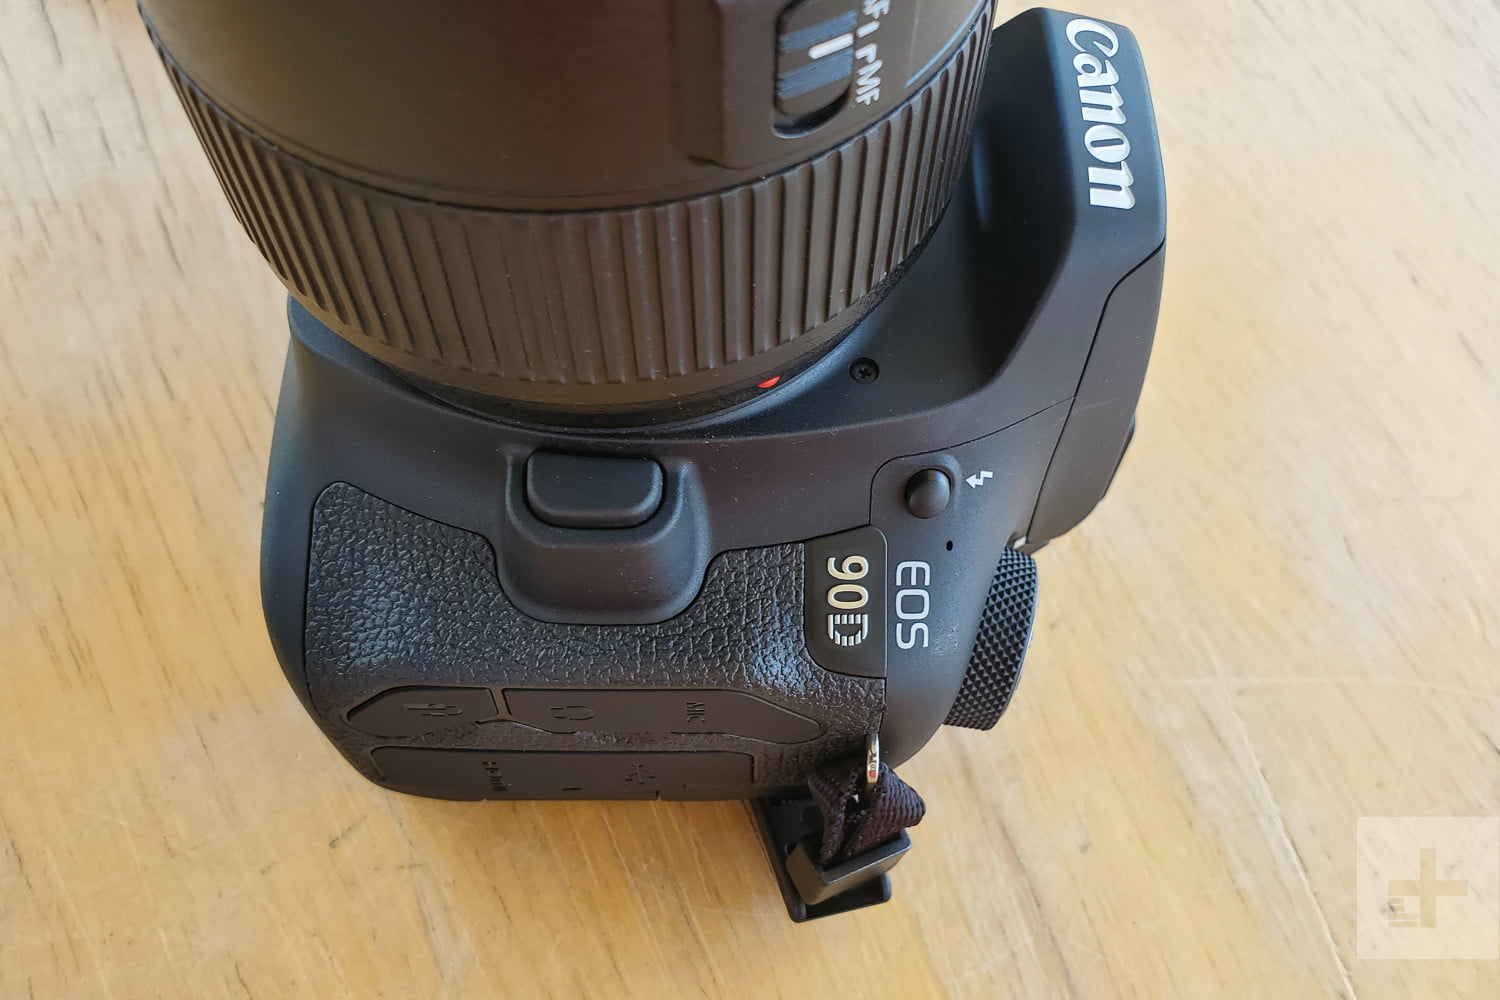 canon eos 90d m6 mark ii set new bar 32mp aps c hands on 5